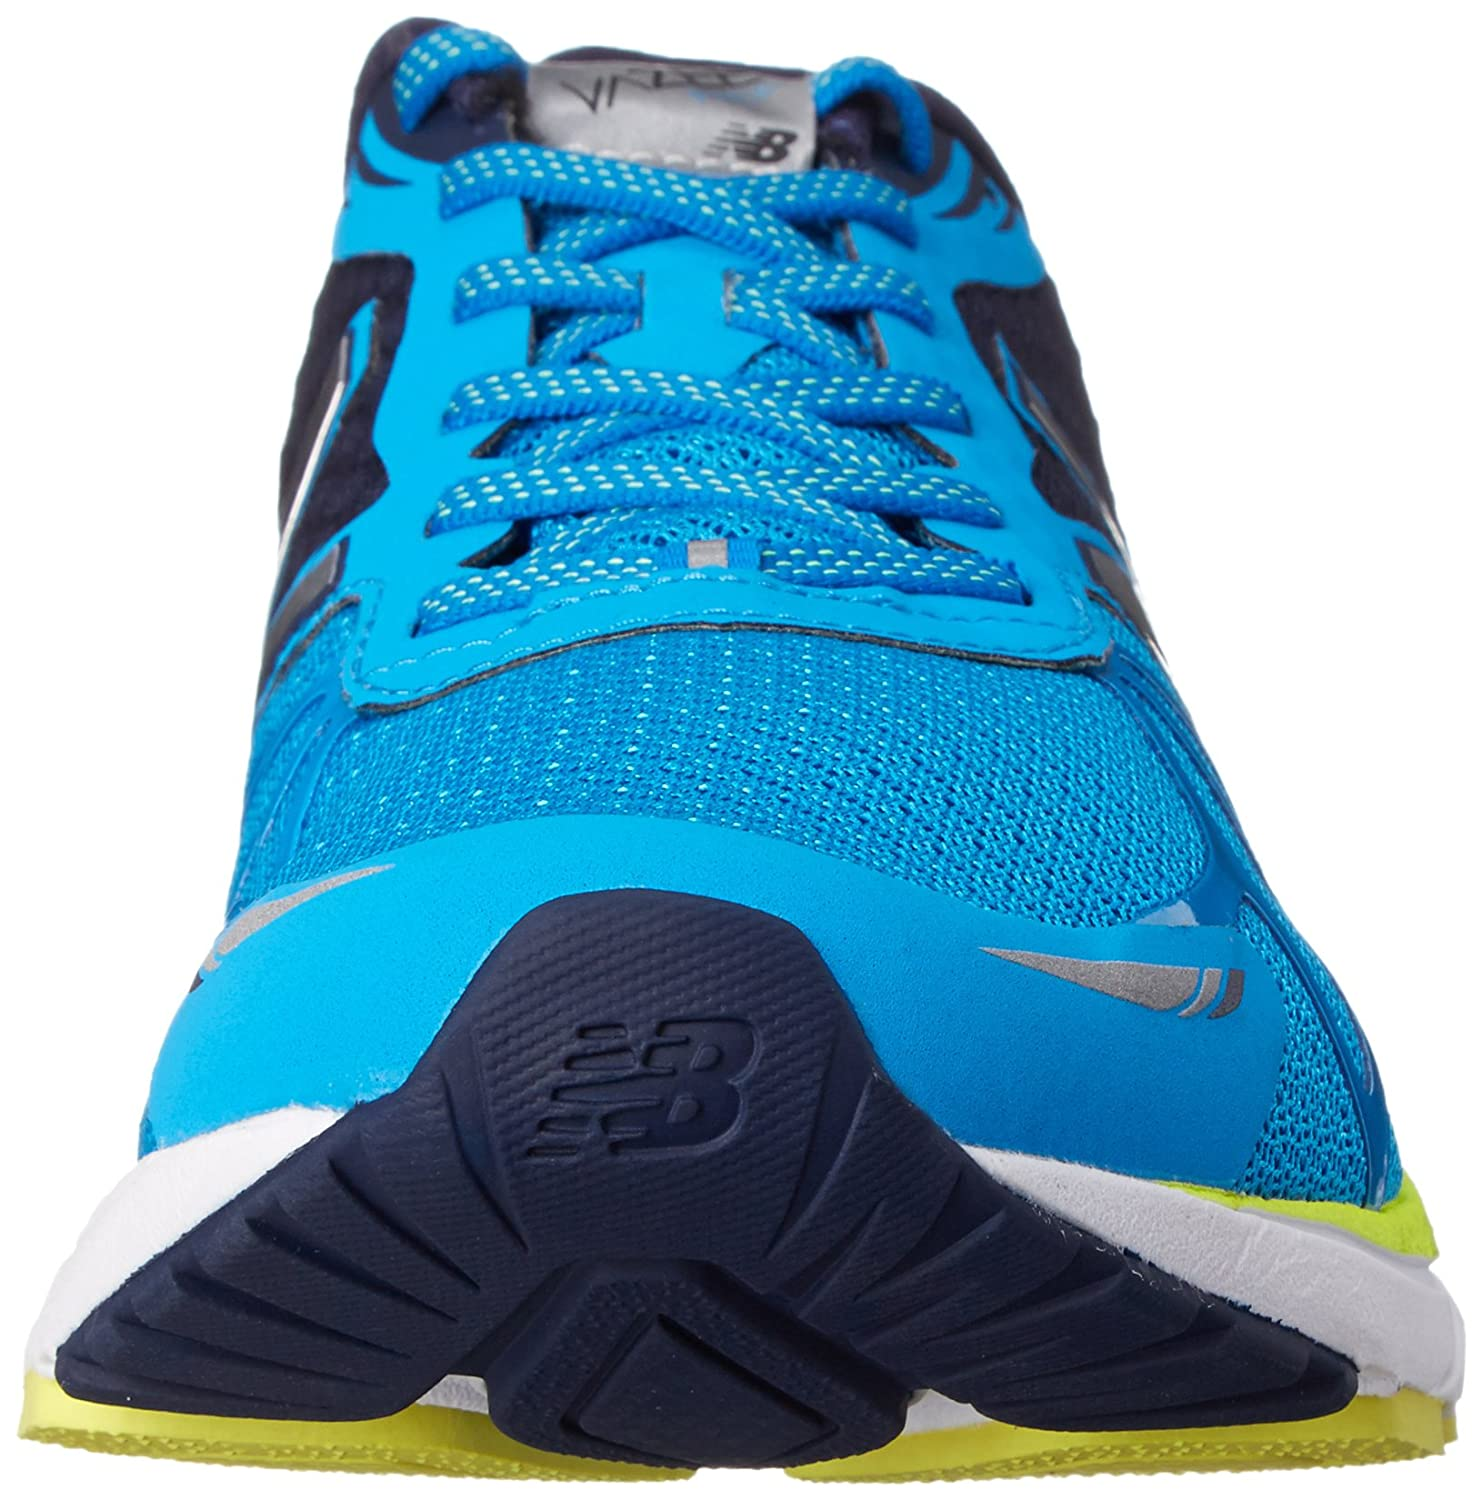 New Balance Mpace D - Zapatillas de correr de lona hombre, azul - Blau (by Blue/yellow), 42: Amazon.es: Zapatos y complementos